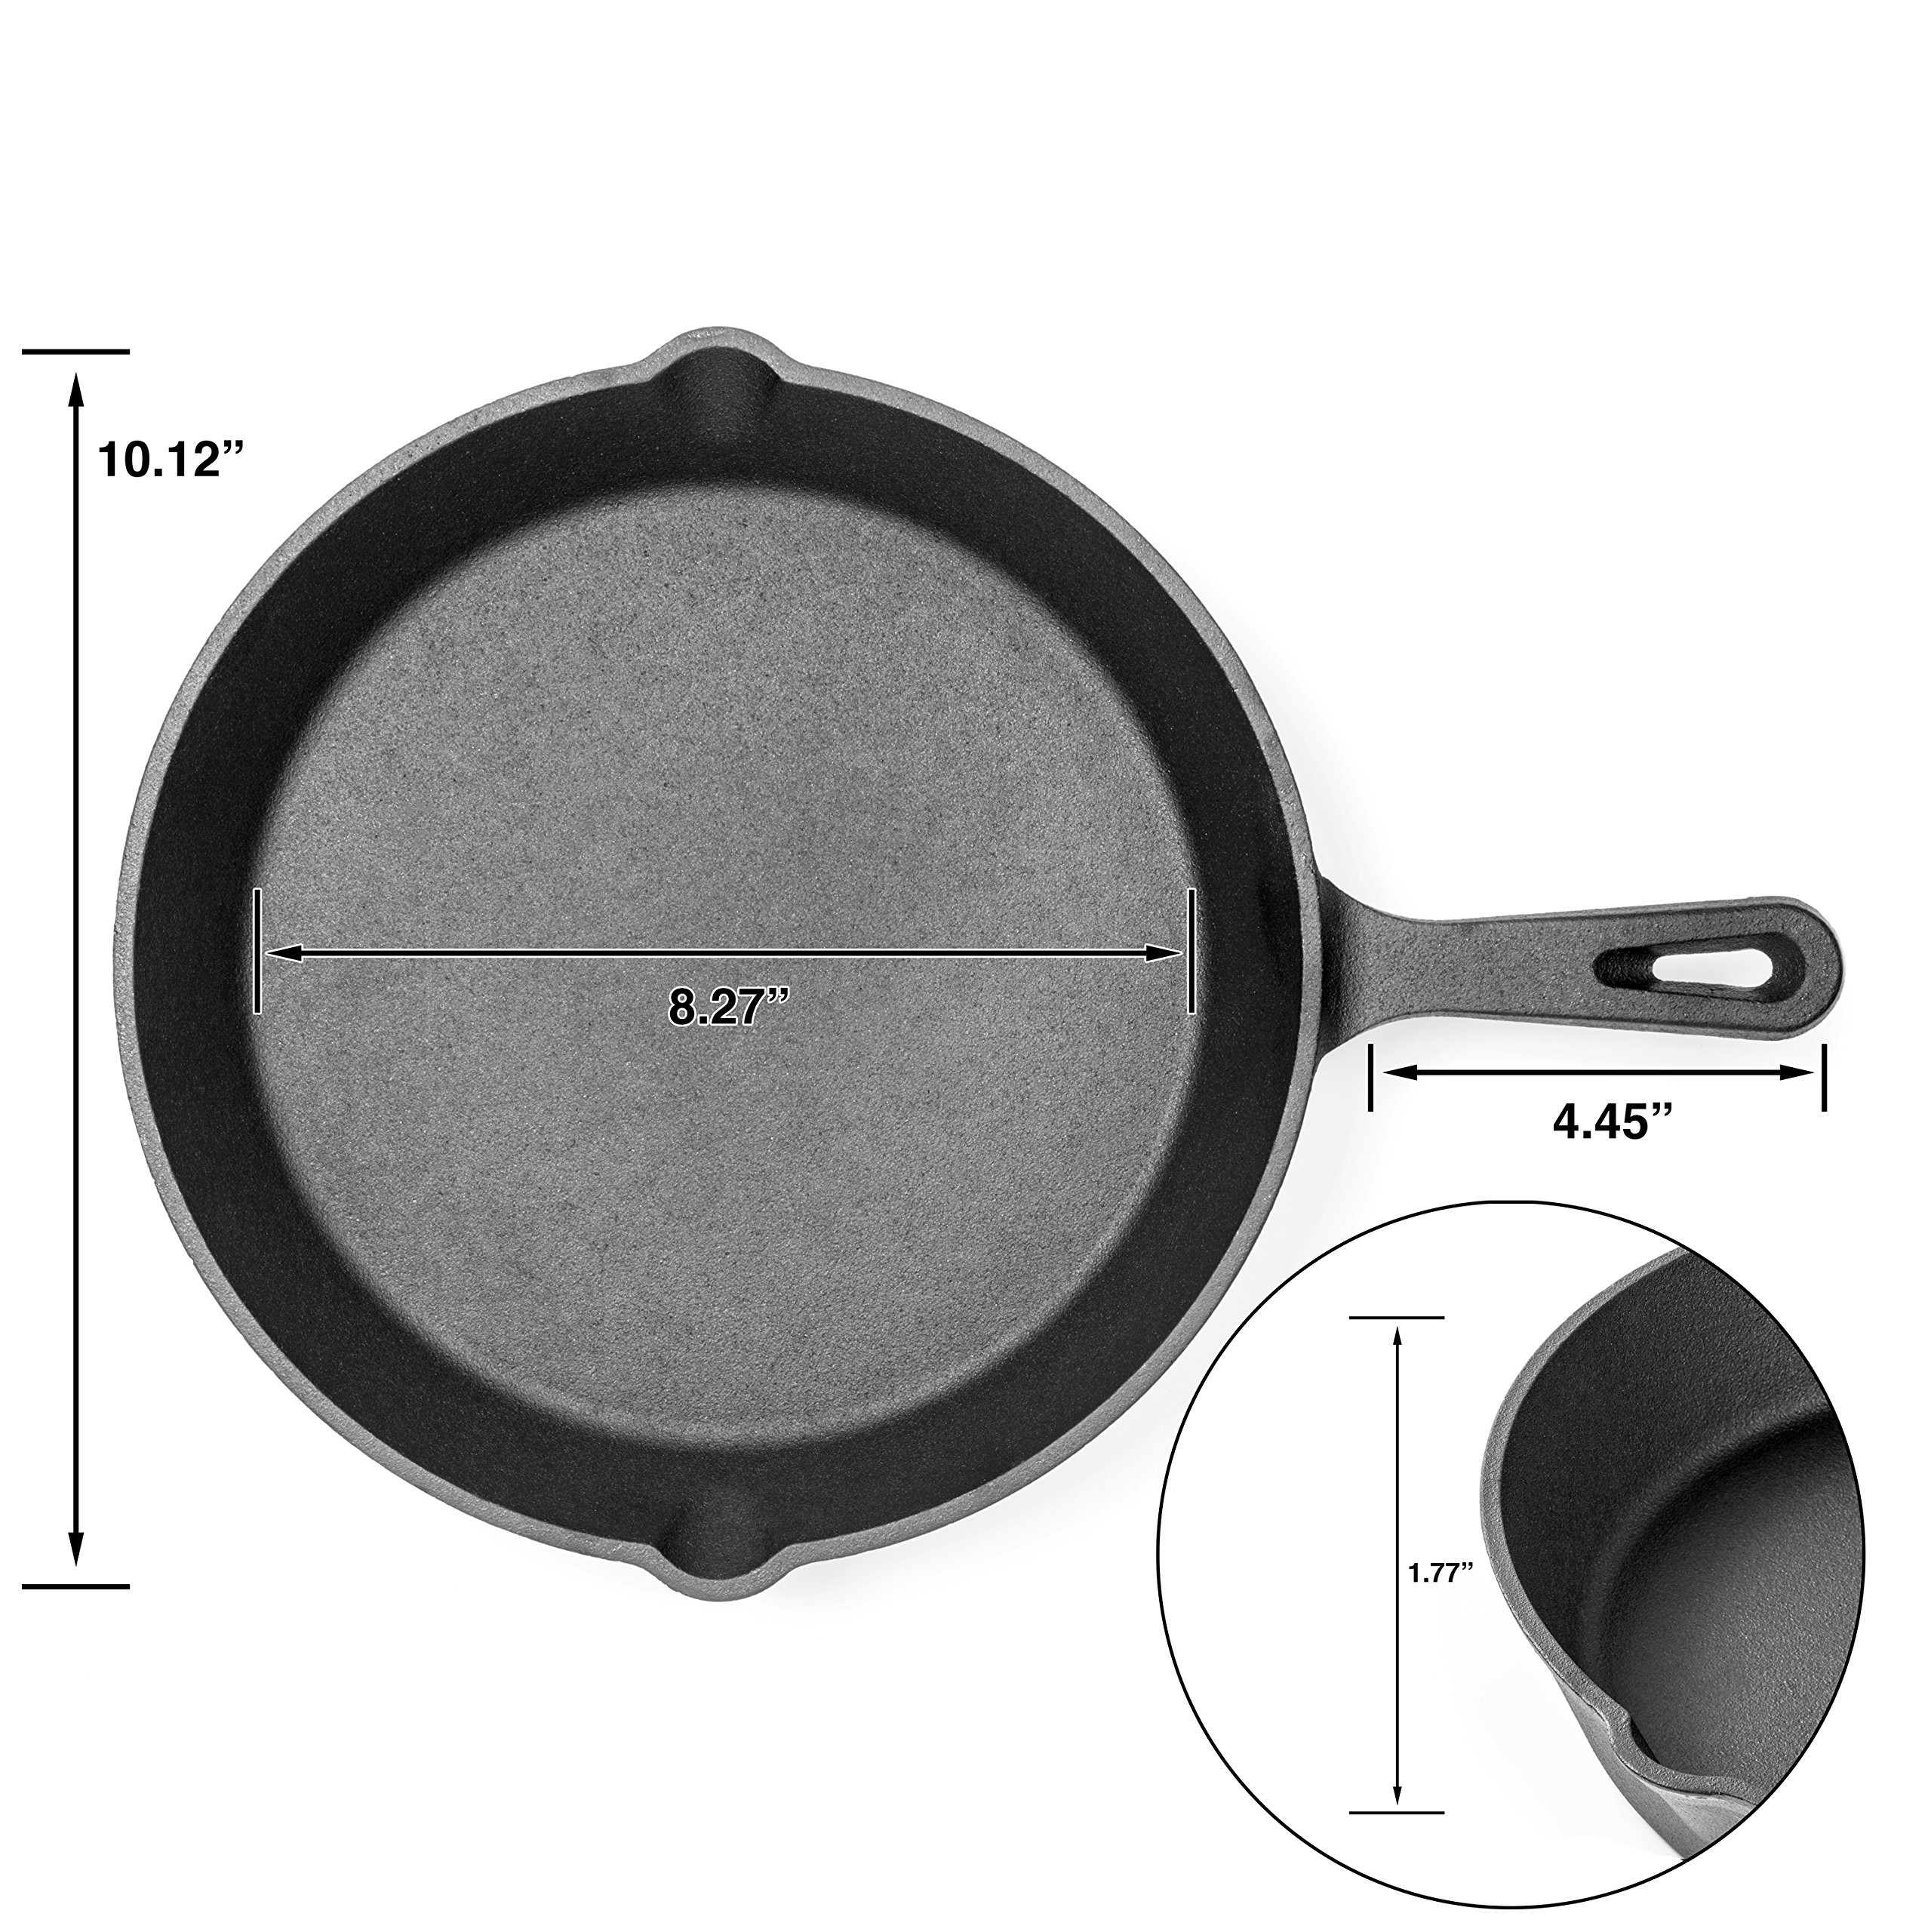 Pre-Seasoned Cast Iron Skillet 3 Piece Set (10, 8 inch & 6 inch Pans) Best Heavy Duty Professional Restaurant Chef Quality Pre Seasoned Pan Cookware For Frying, Saute, Cooking by Amsha Kitchen (Image #2)